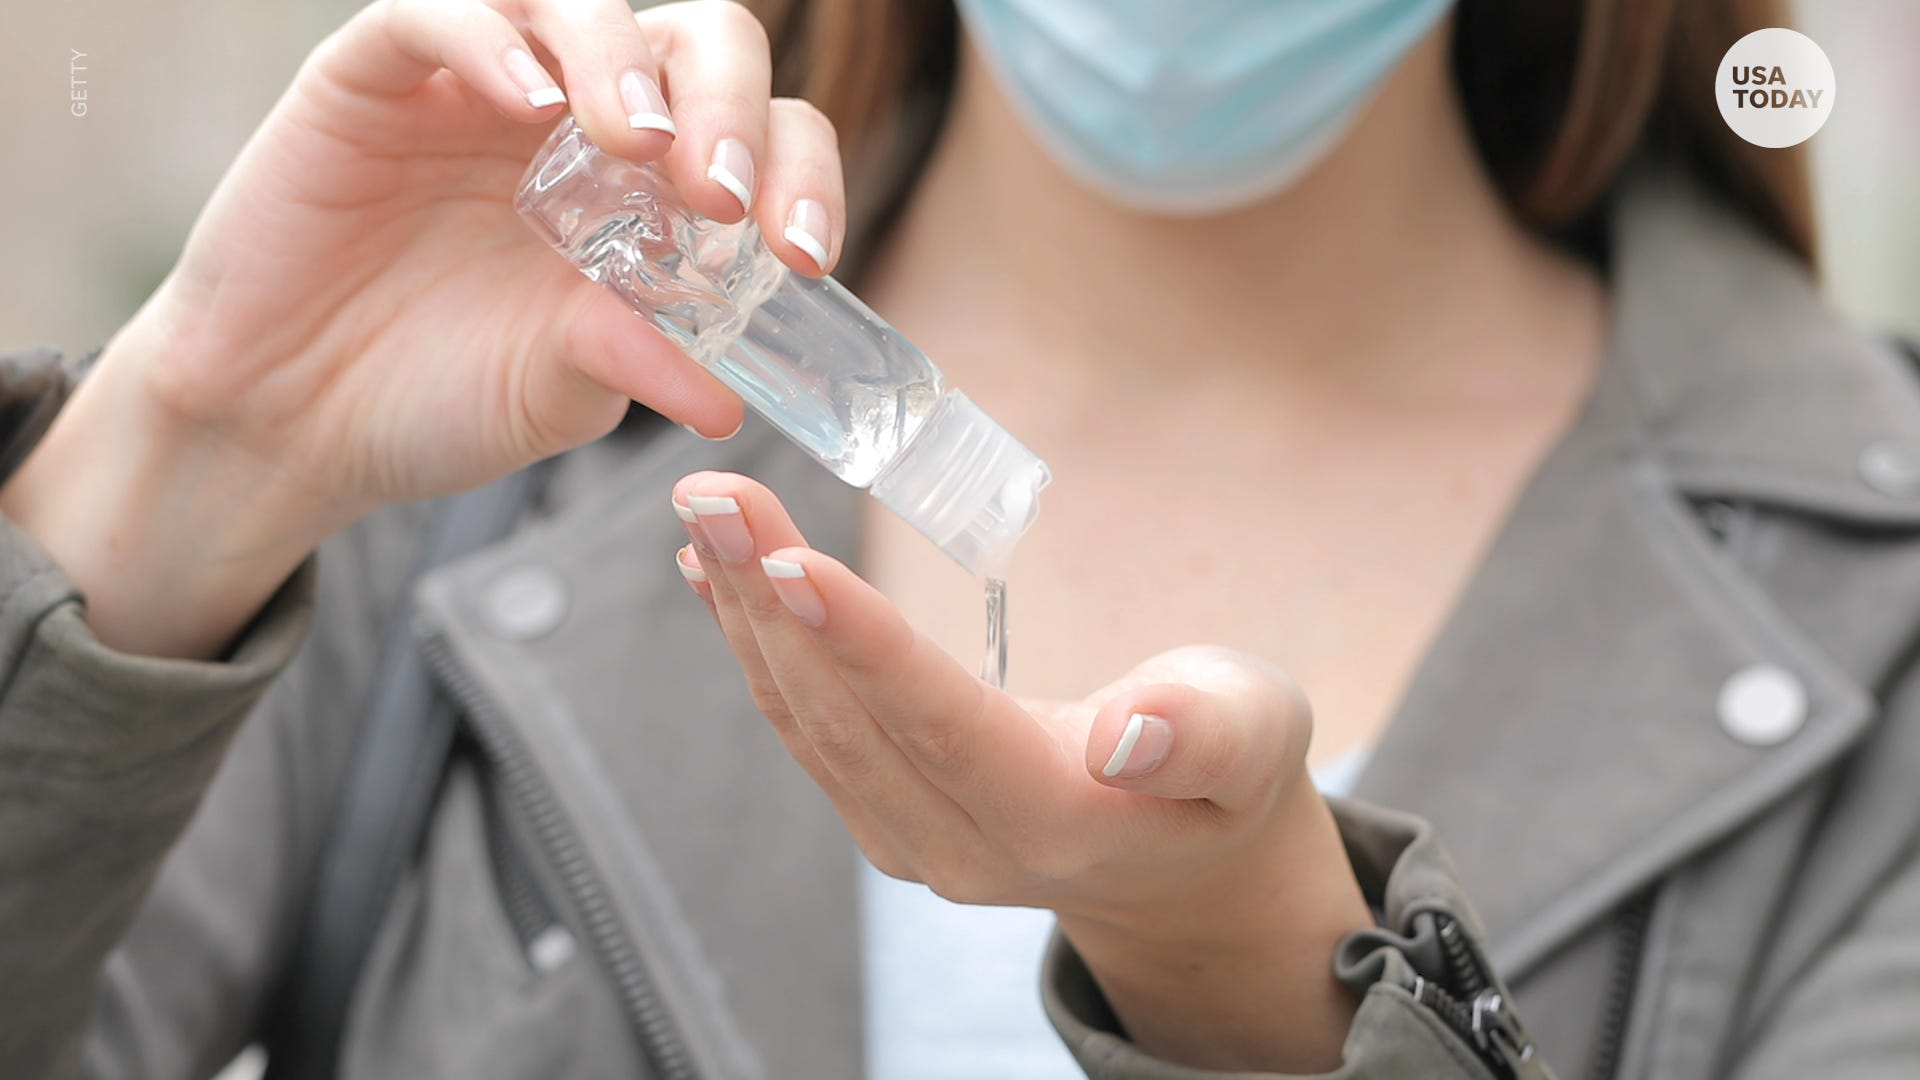 FDA issues alert about methanol-contaminated hand sanitizer imported from Mexico